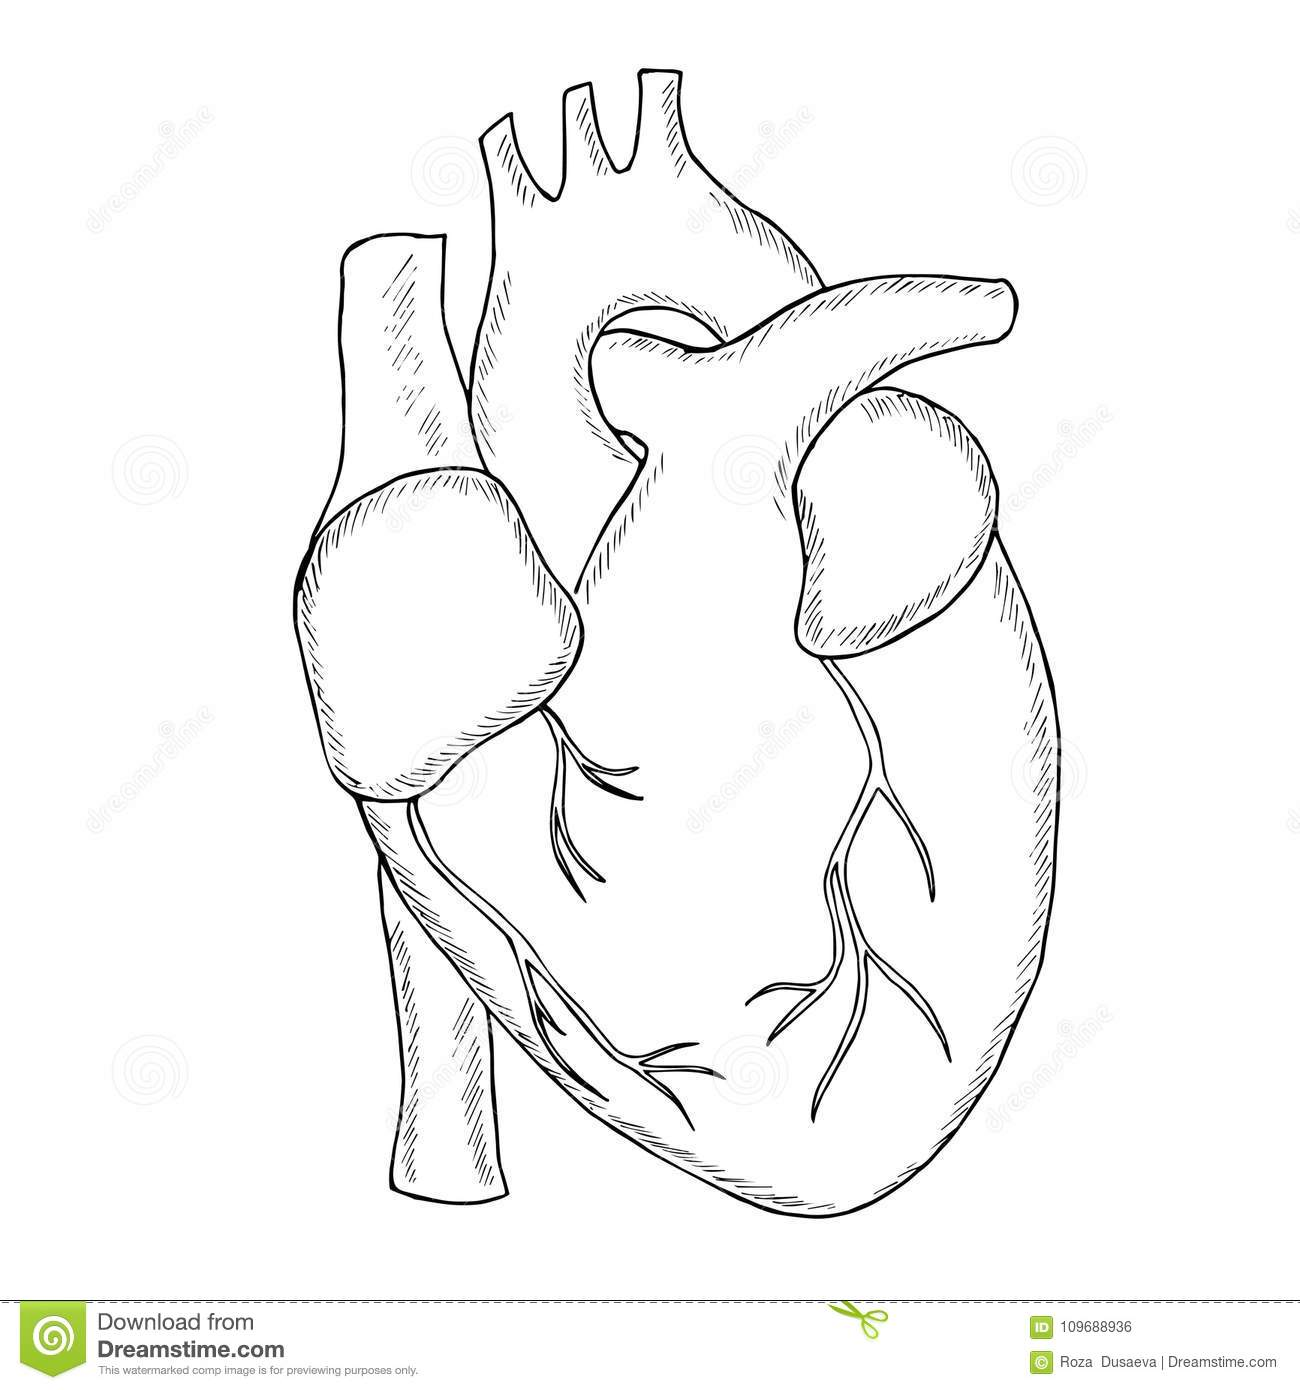 Human Heart Sketch Liner Stock Vector Illustration Of